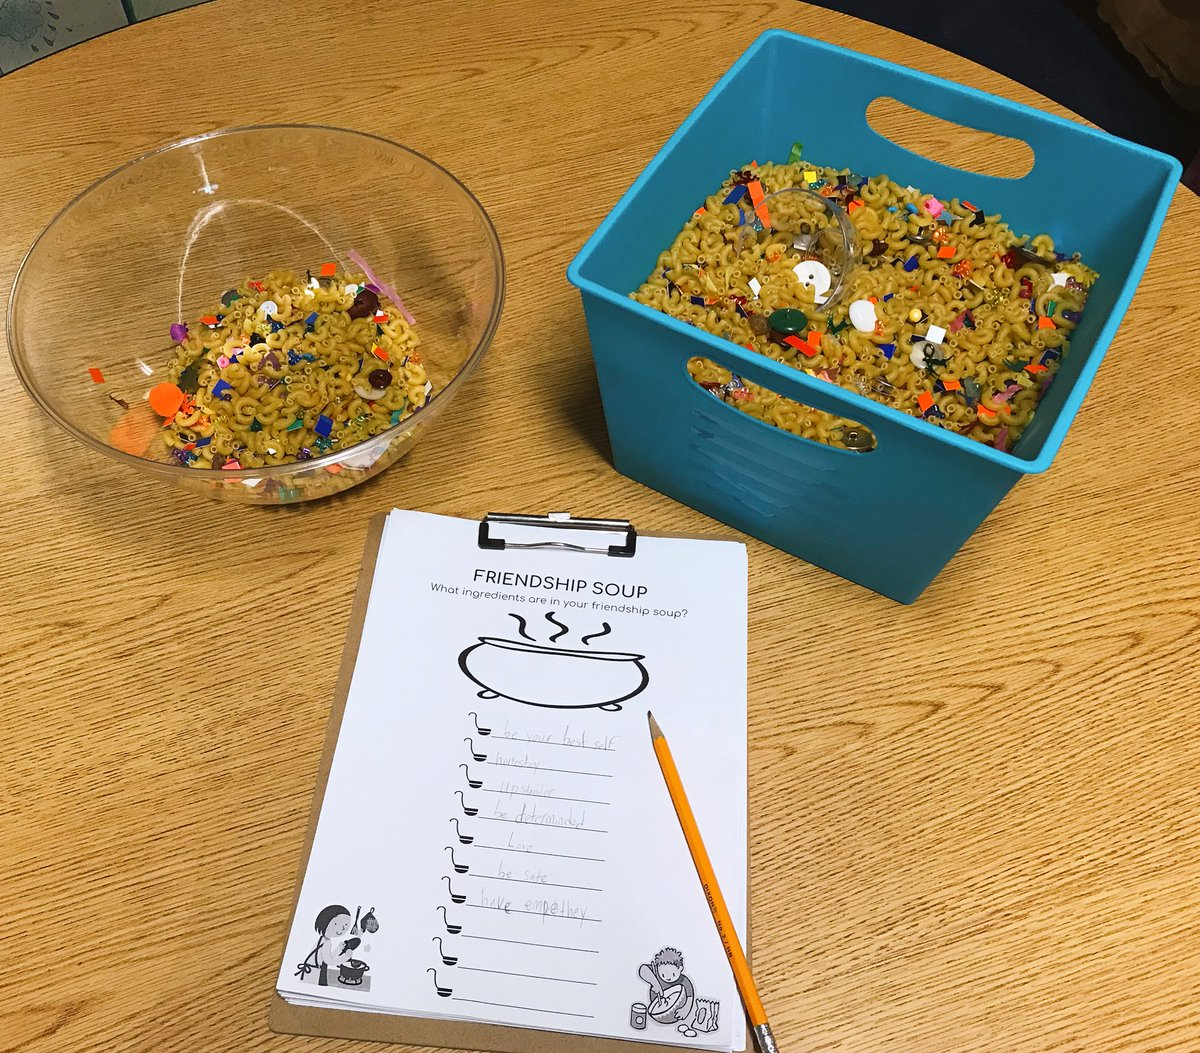 Ms Cariddi On Twitter 3rd Grade Ss Made My Favorite Soup Friendship Soup Recipes Included Important Friendship Traits That Are Needed To Make And Keep Friends What Ingredients Are In Your